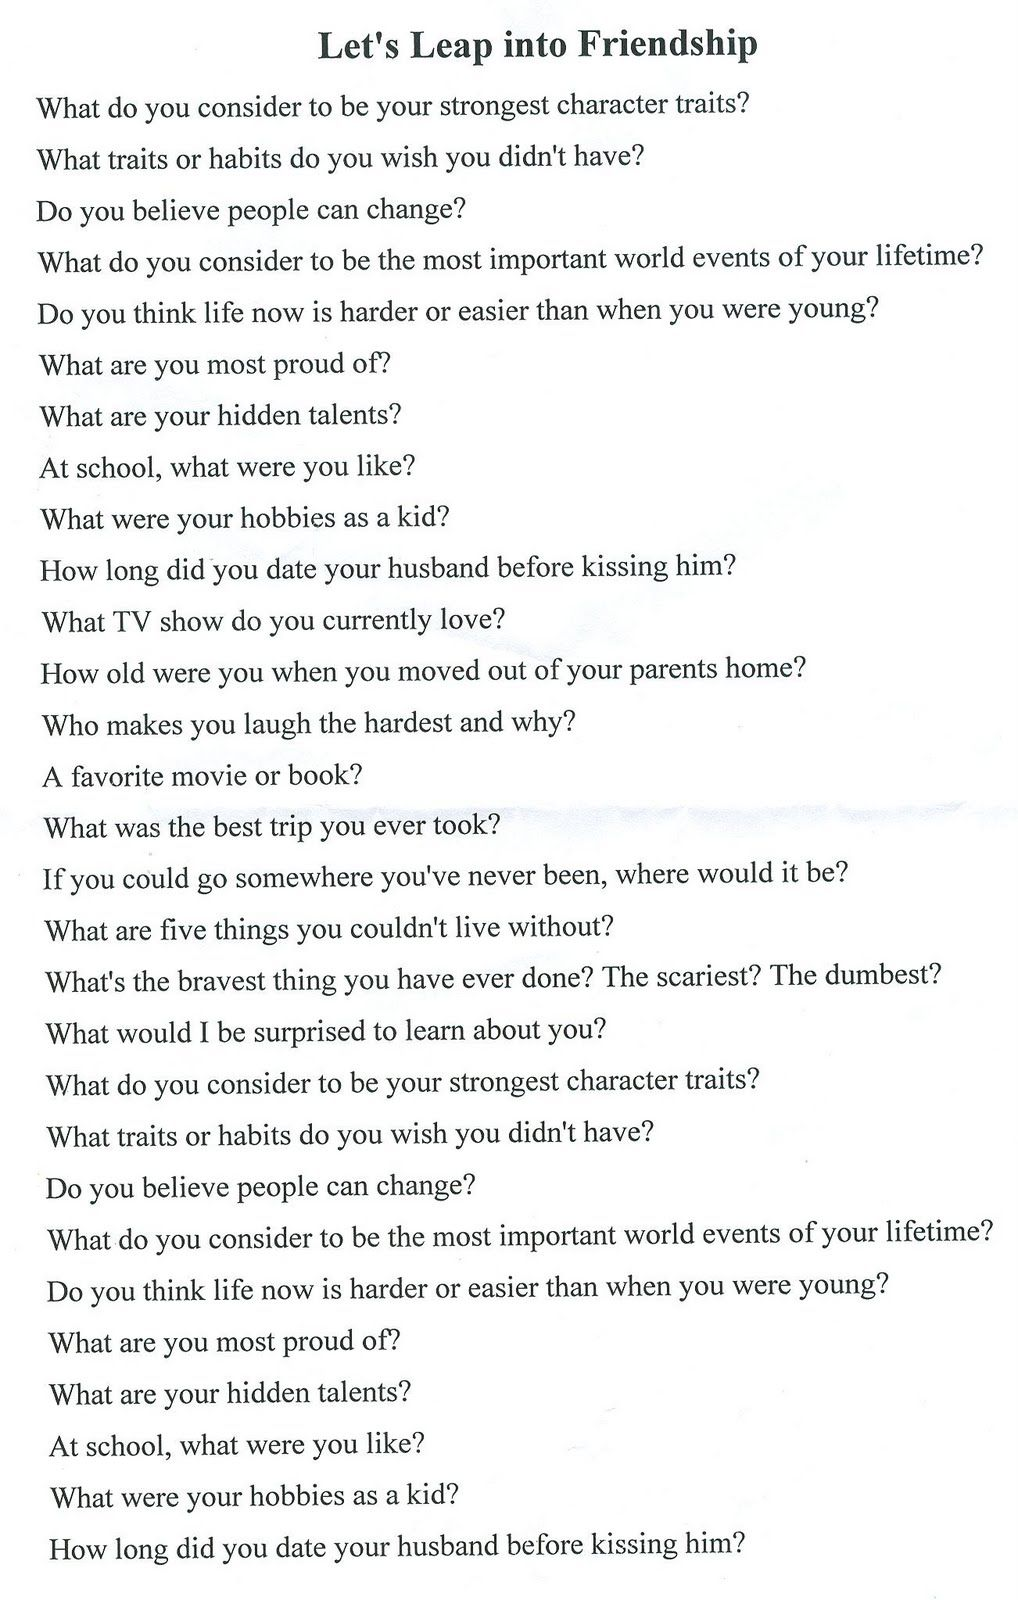 Speed dating questionnaire